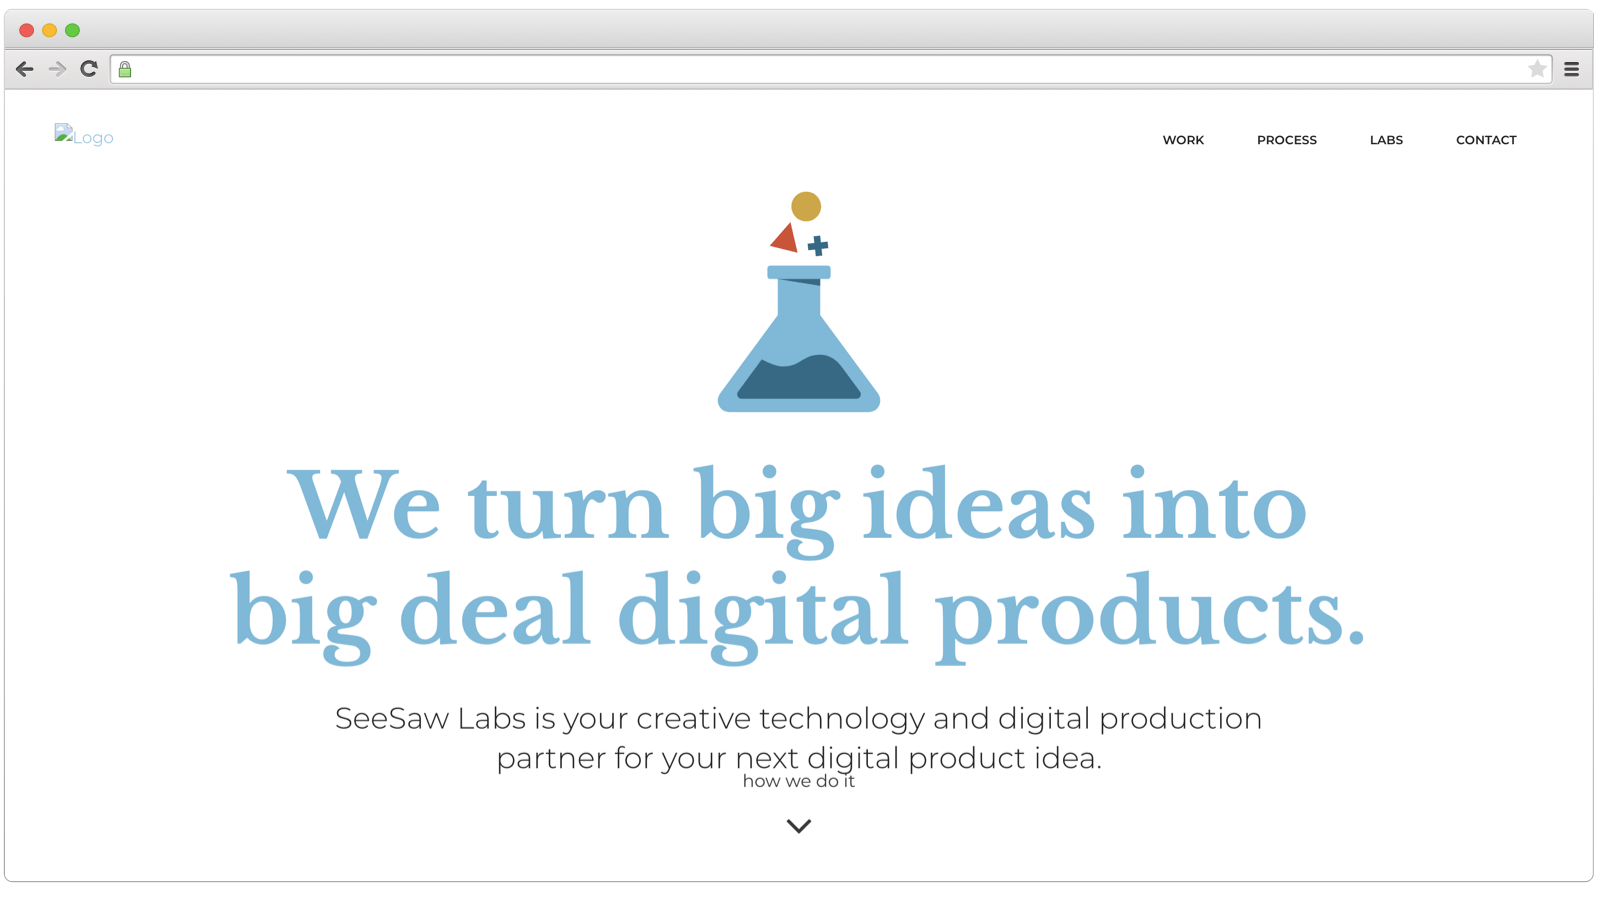 SeeSaw Labs